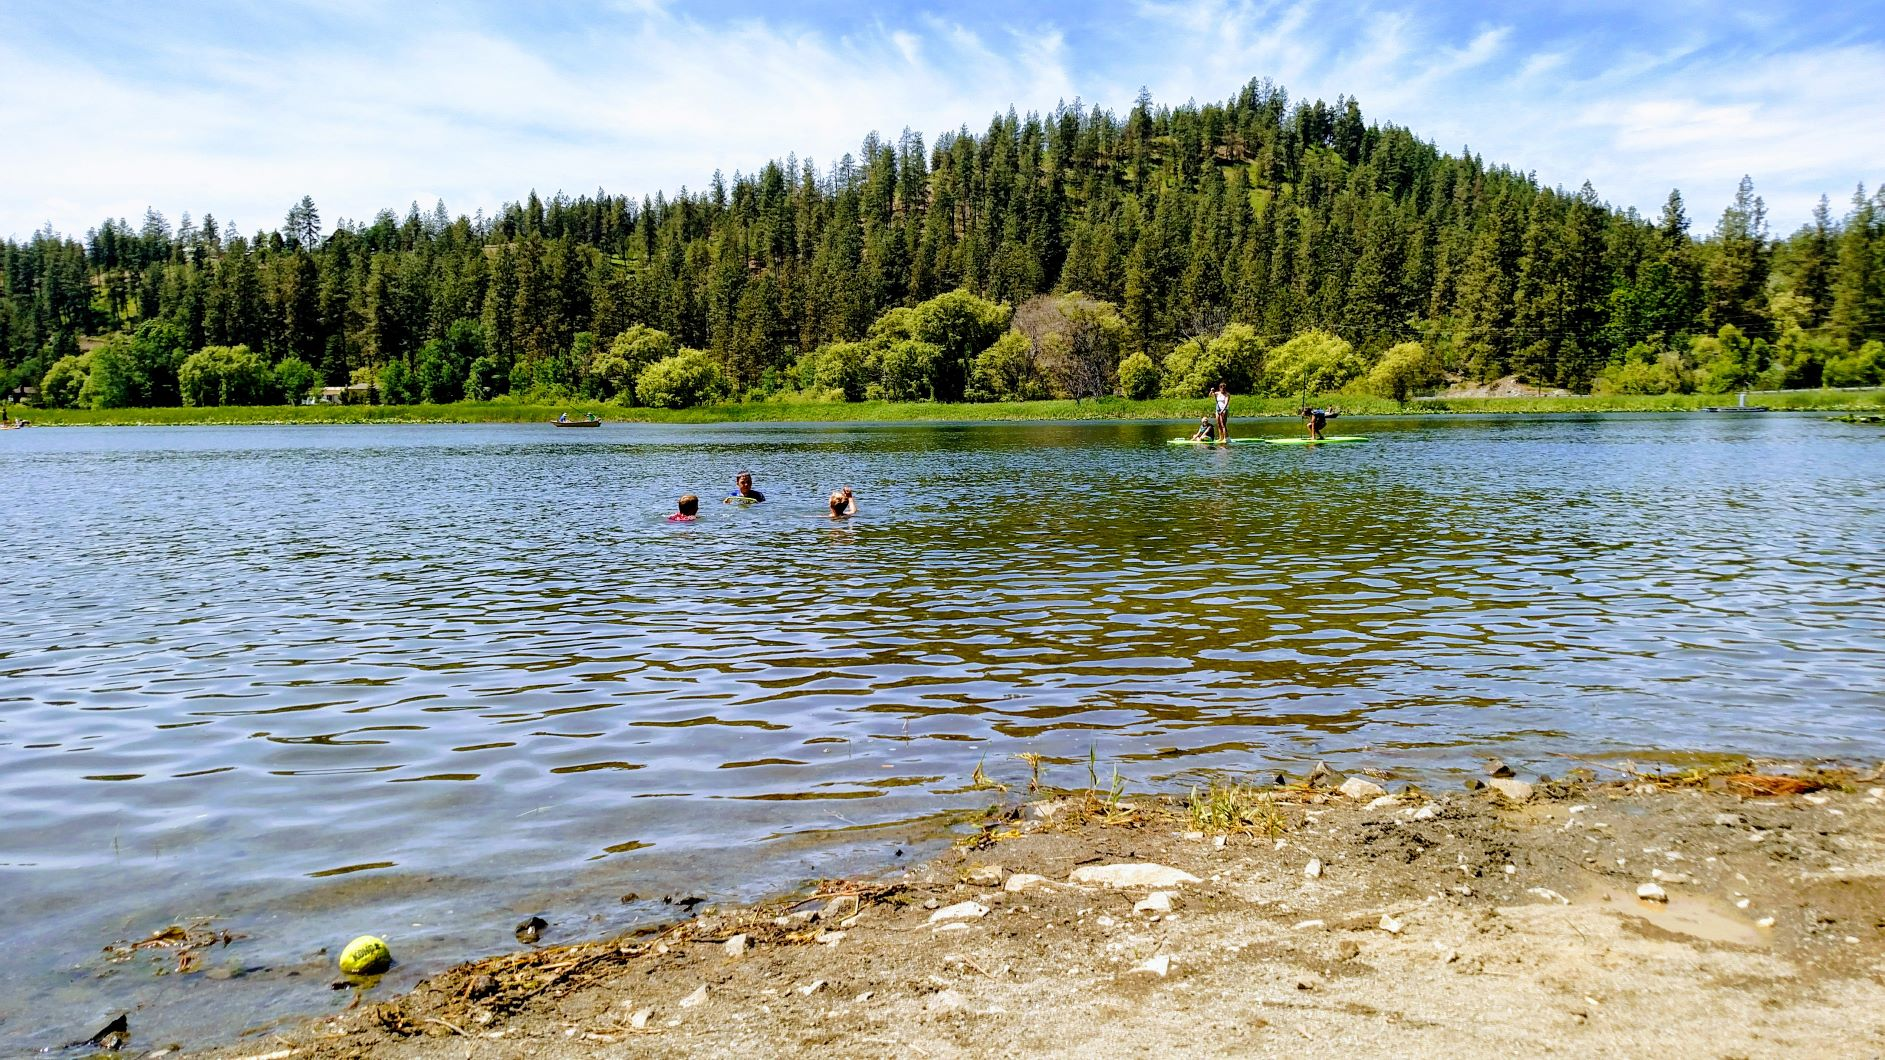 Children swimming and paddleboarding on Fish Lake, with trees in the background and a sandy beach in the foreground.